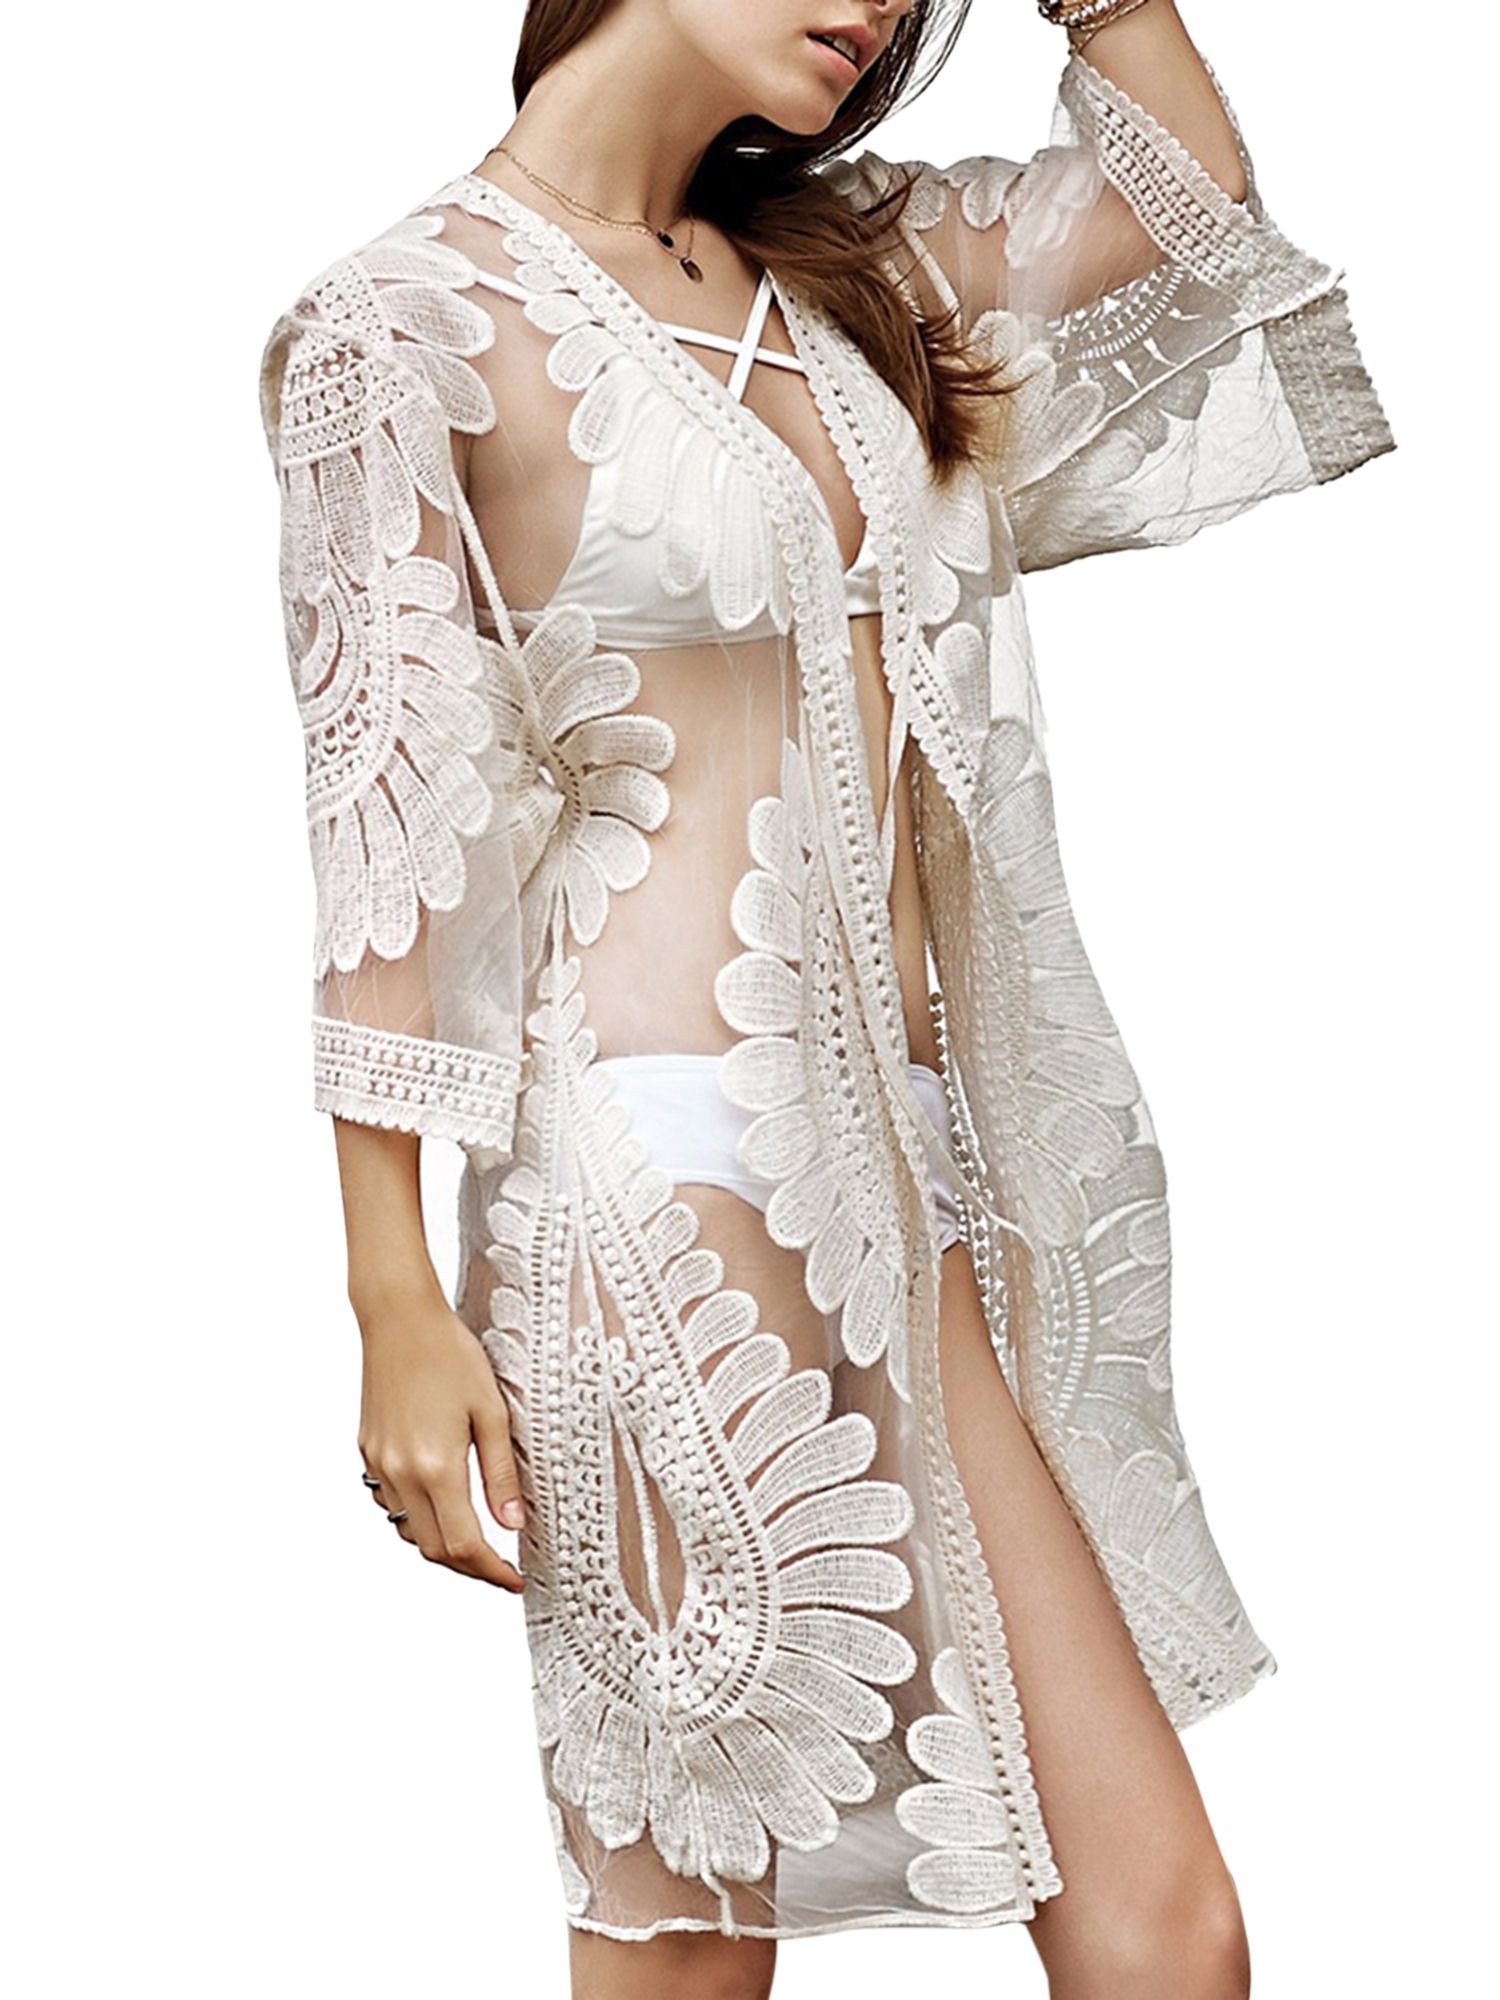 592db1abf9 Women Beach Cover Up Swimsuit Floral Lace Open Front Kimono Cardigan Beachwear  Summer Bathing Suit Swimwear Long Tops #Ad #Lace, #Affiliate, #Floral,  #Front